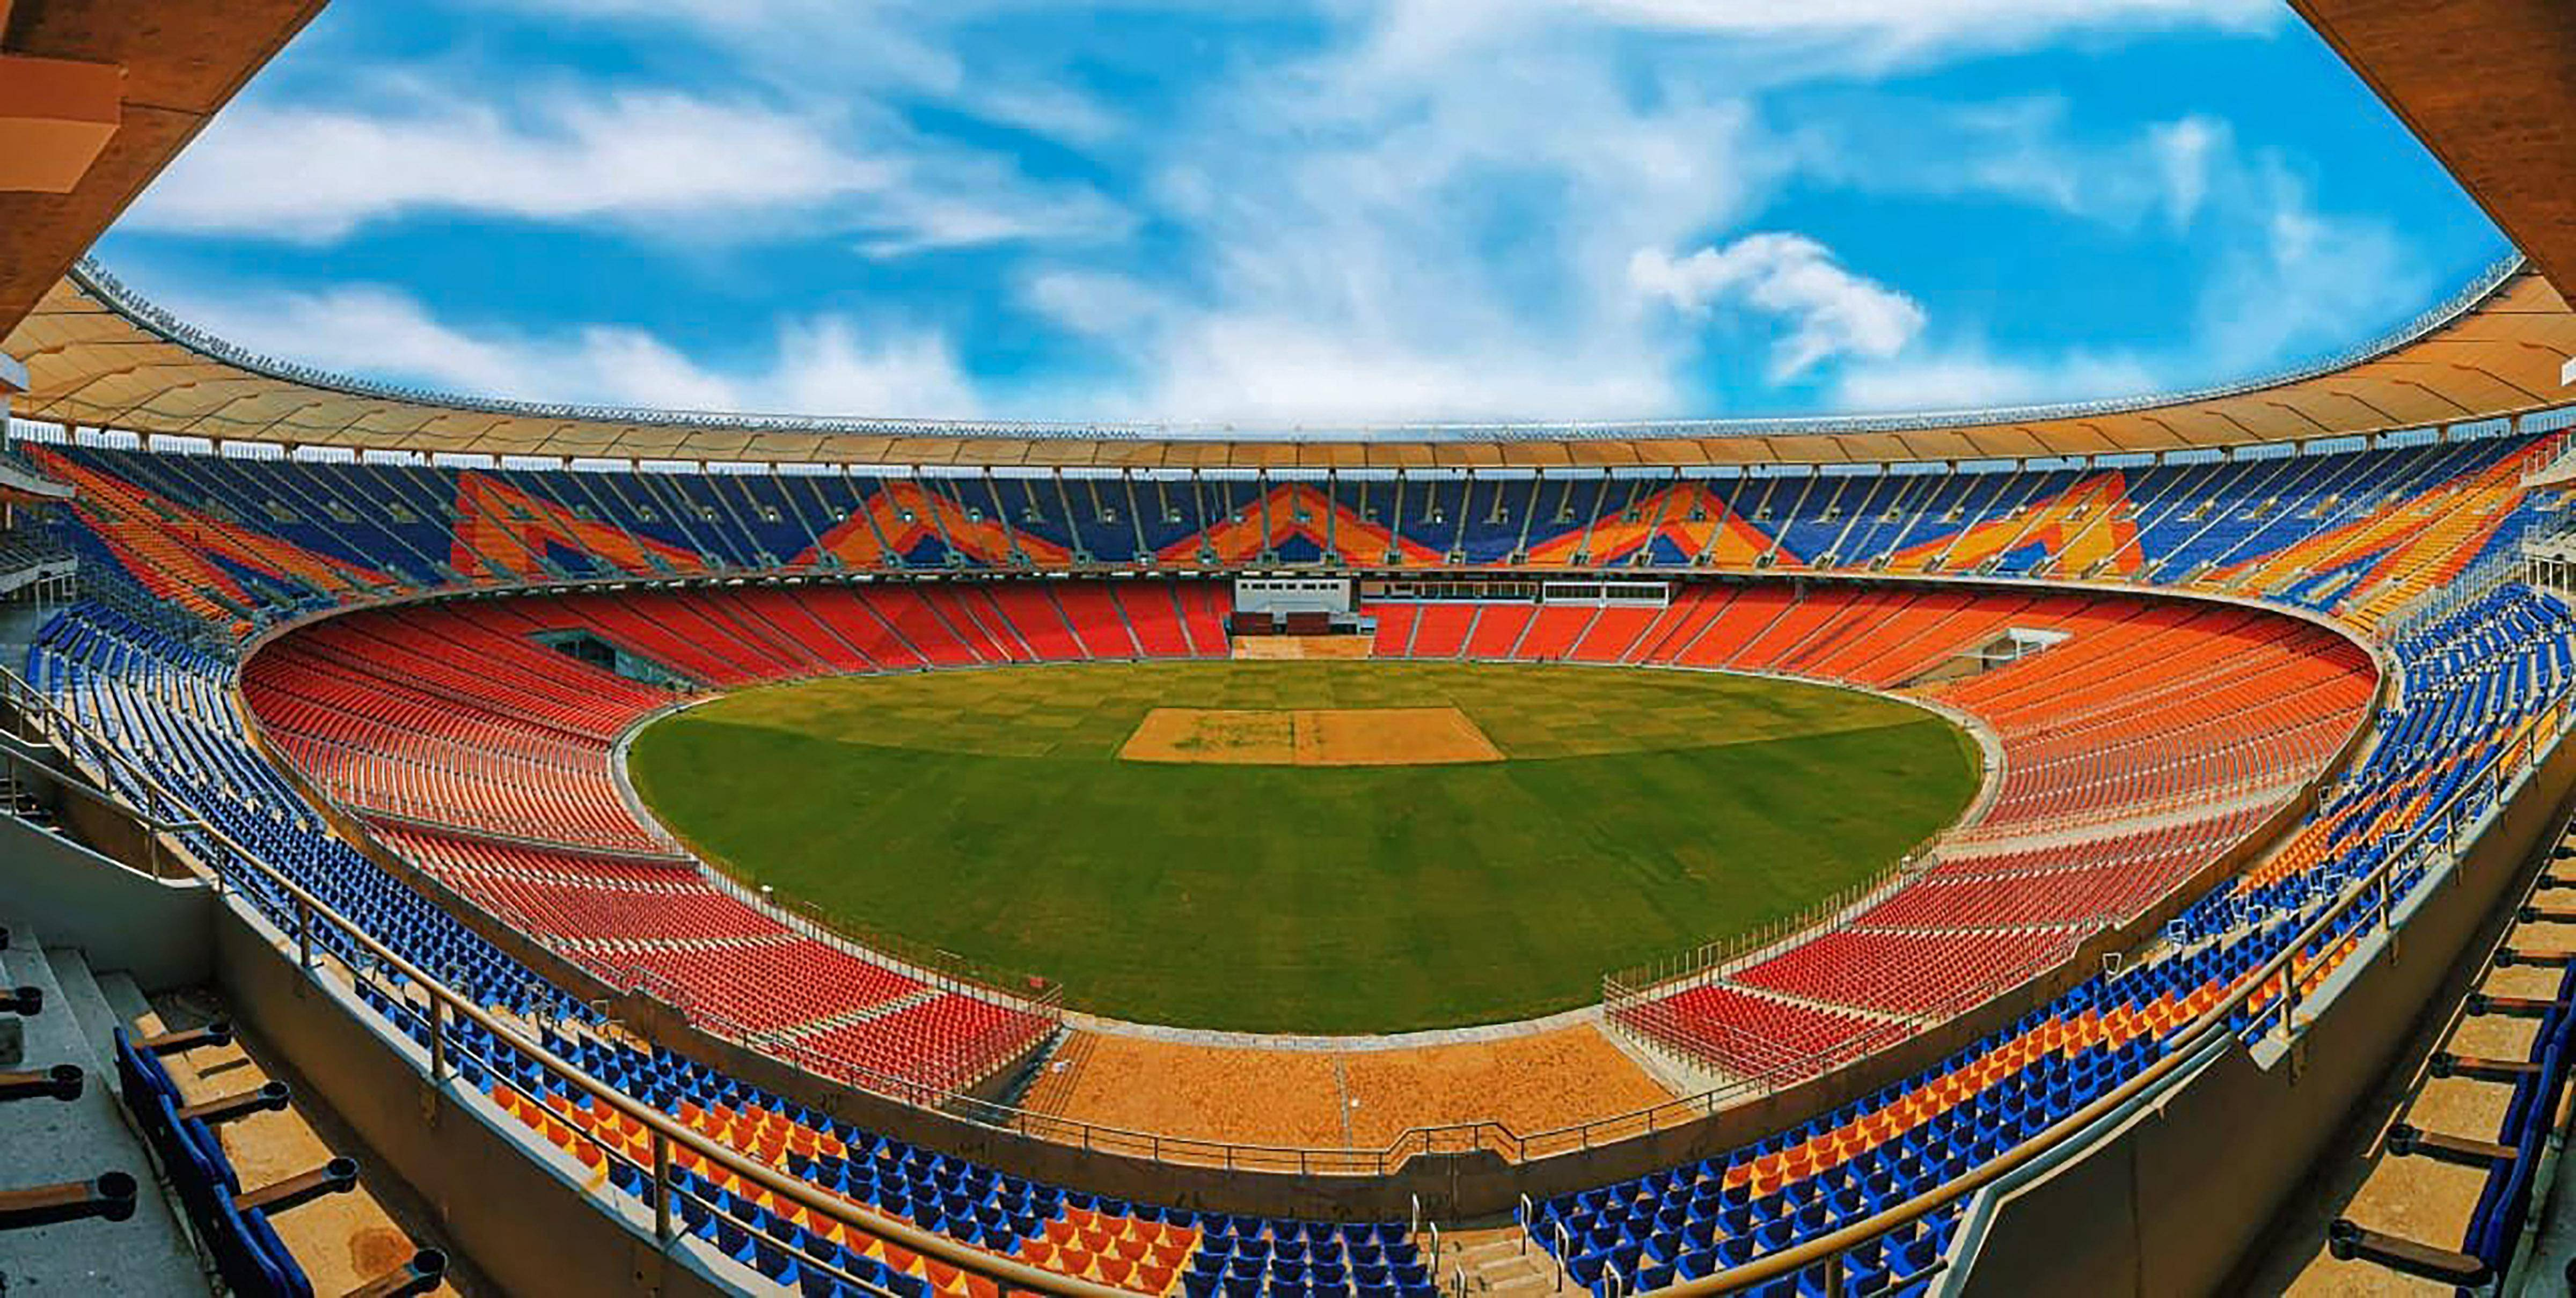 India venture into unknown, England seek answers for 'pink ball turner' at world's largest stadium